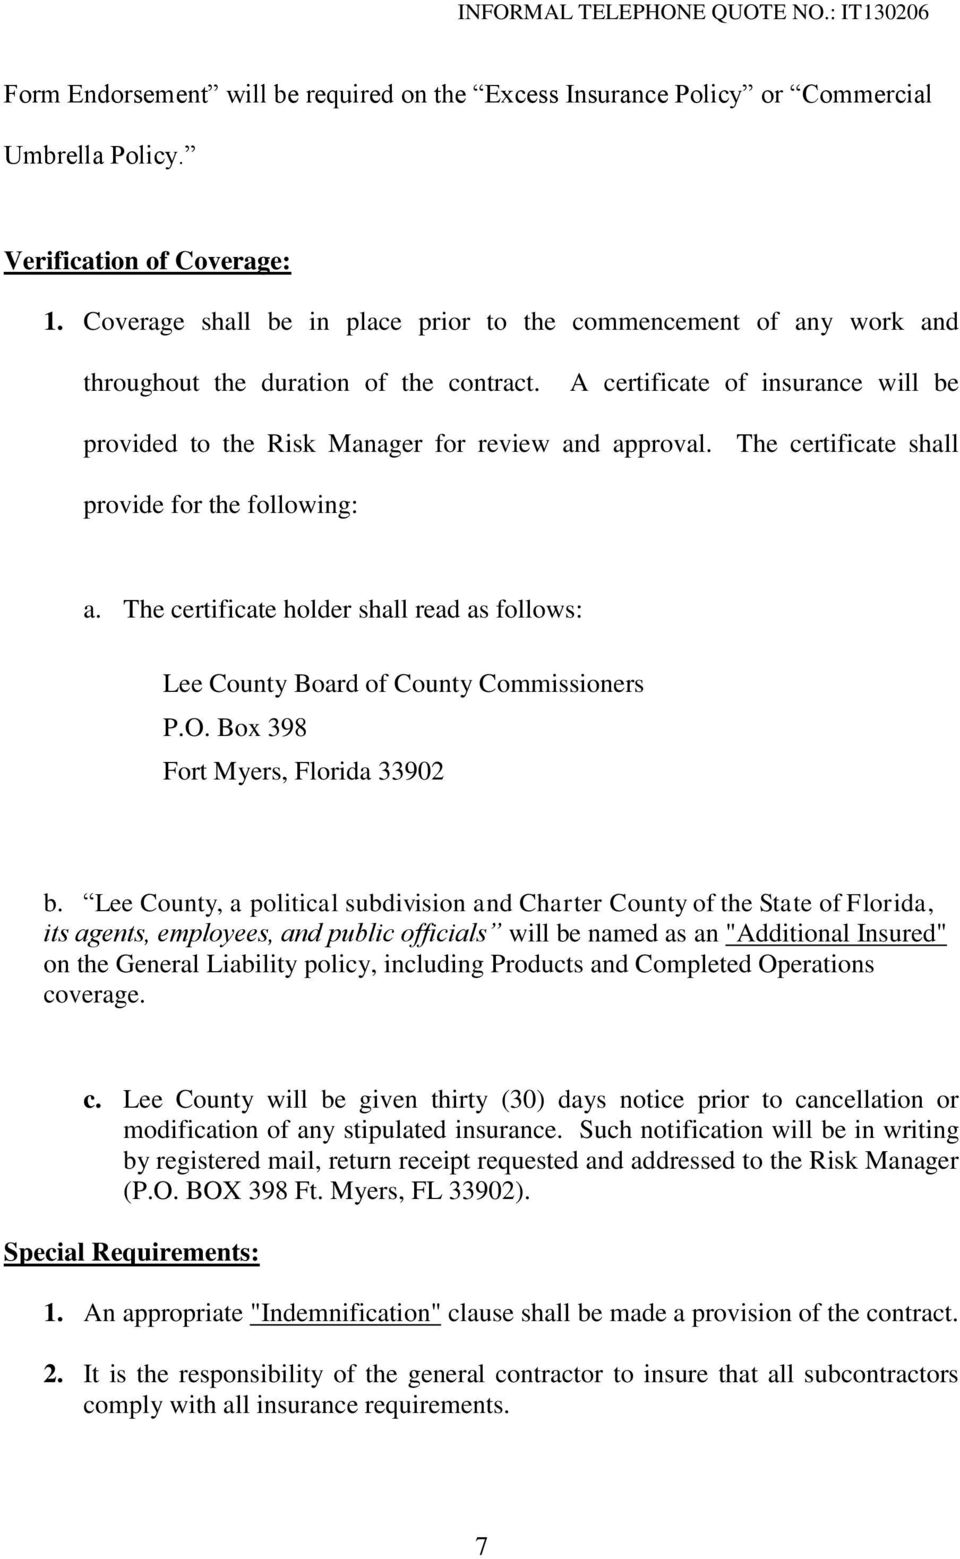 The certificate shall provide for the following: a. The certificate holder shall read as follows: Lee County Board of County Commissioners P.O. Box 398 Fort Myers, Florida 33902 b.